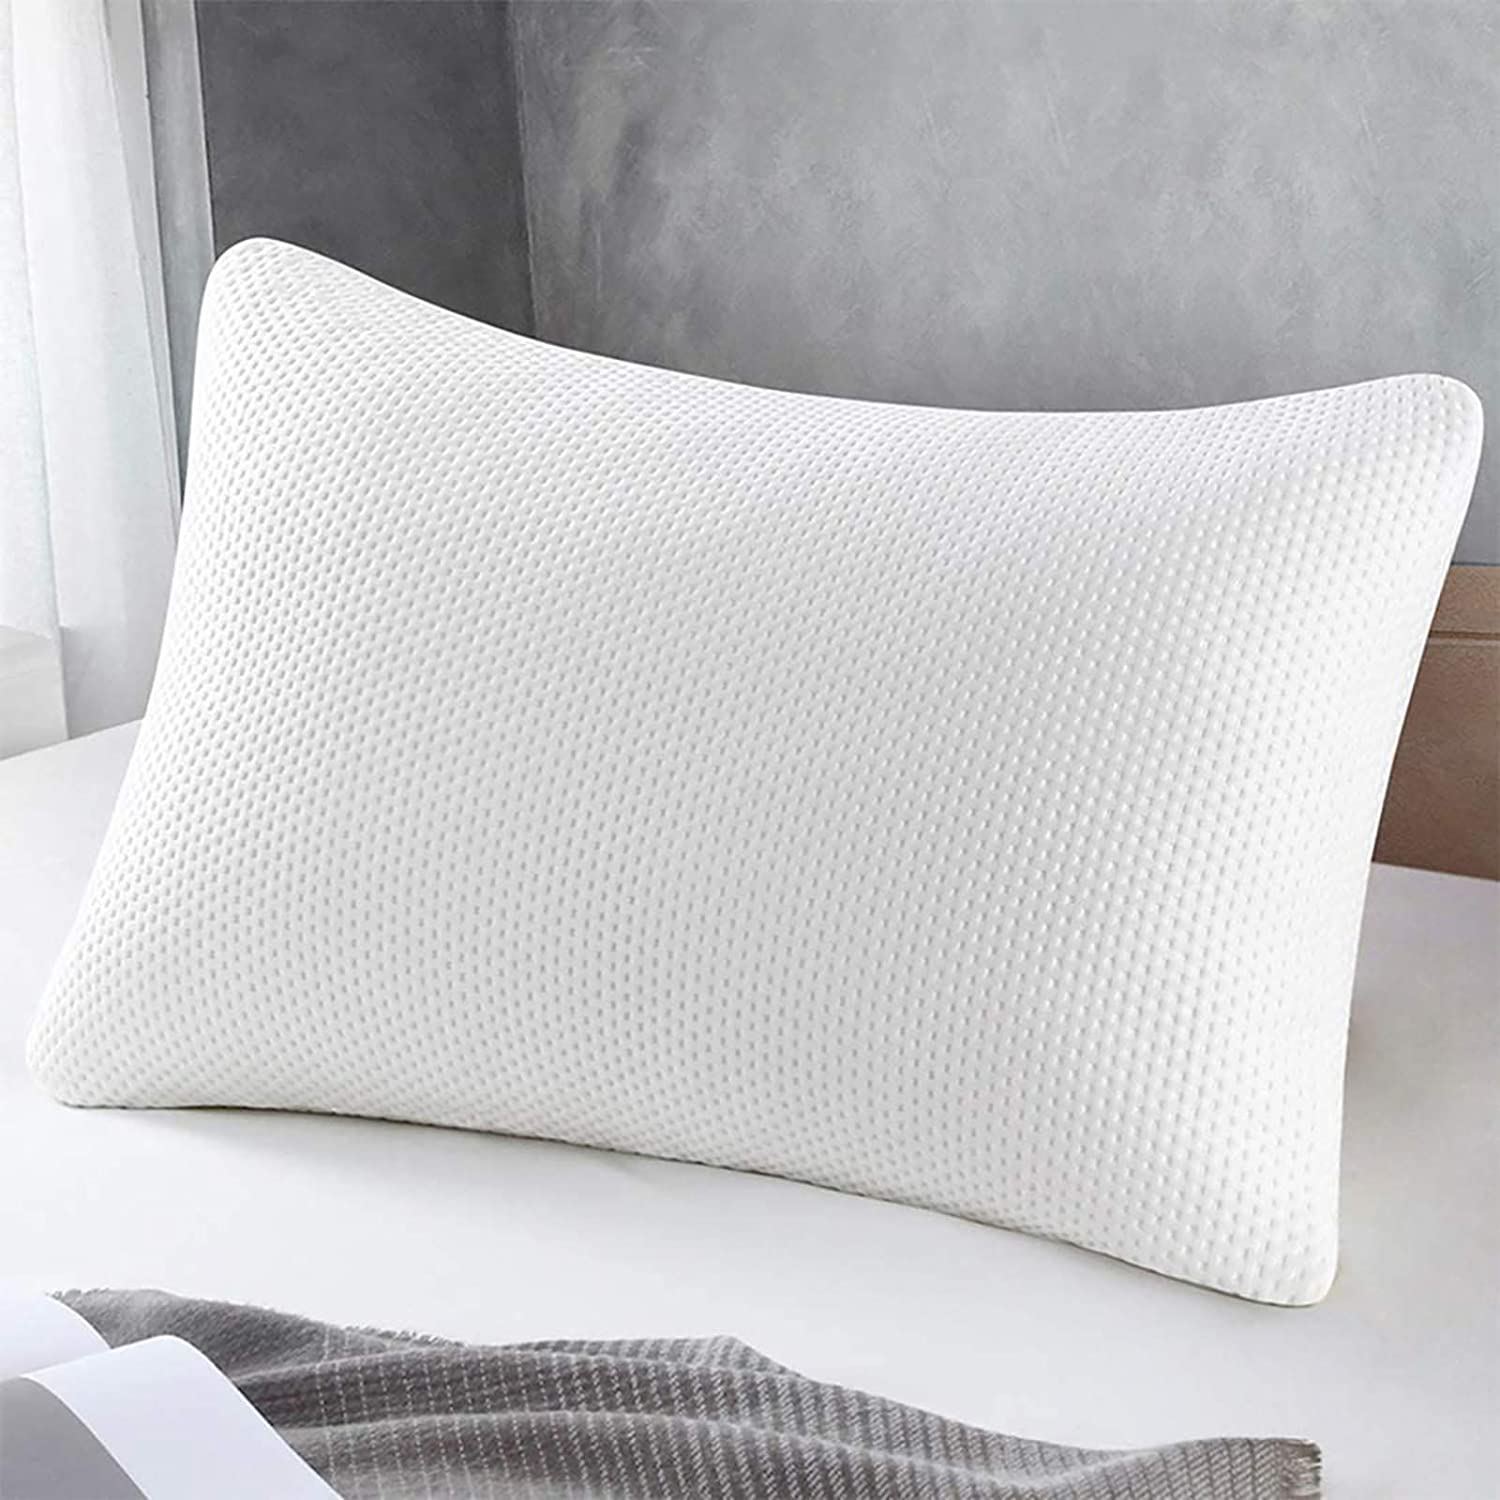 SWTMERRY Memory Foam Pillow, Queen Size